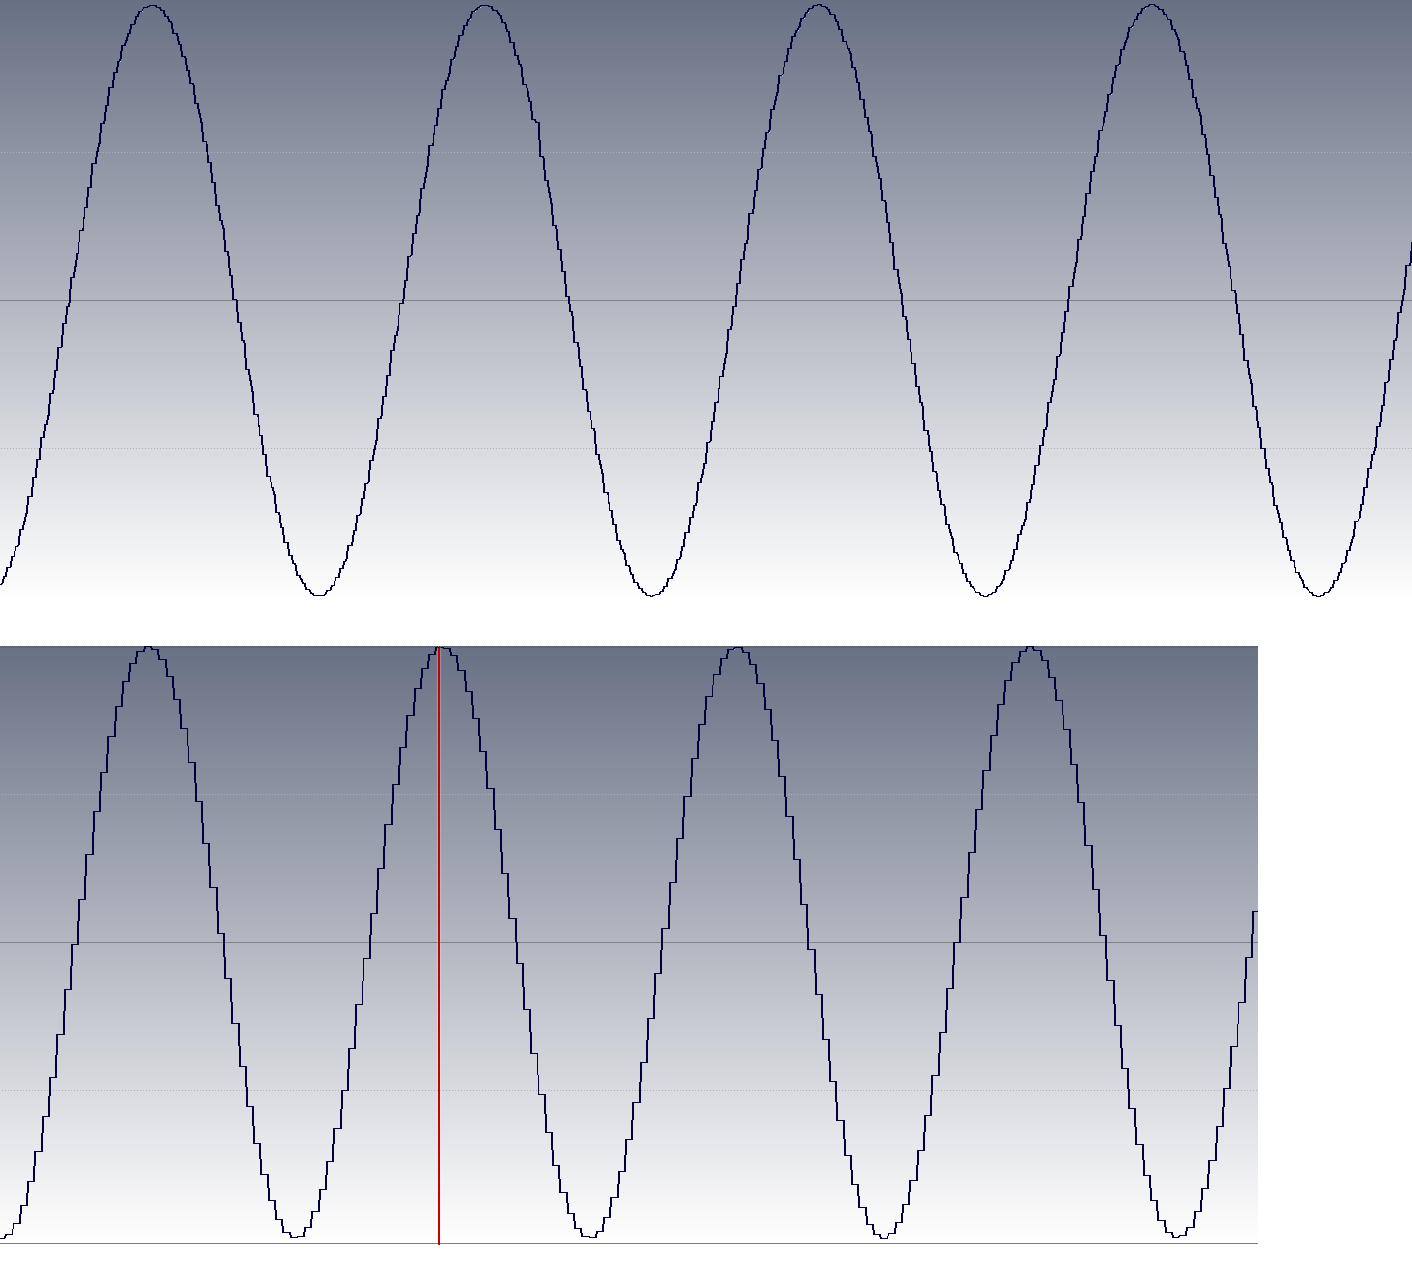 peerlfo_vs_unzlfo_10hz_waveform.png